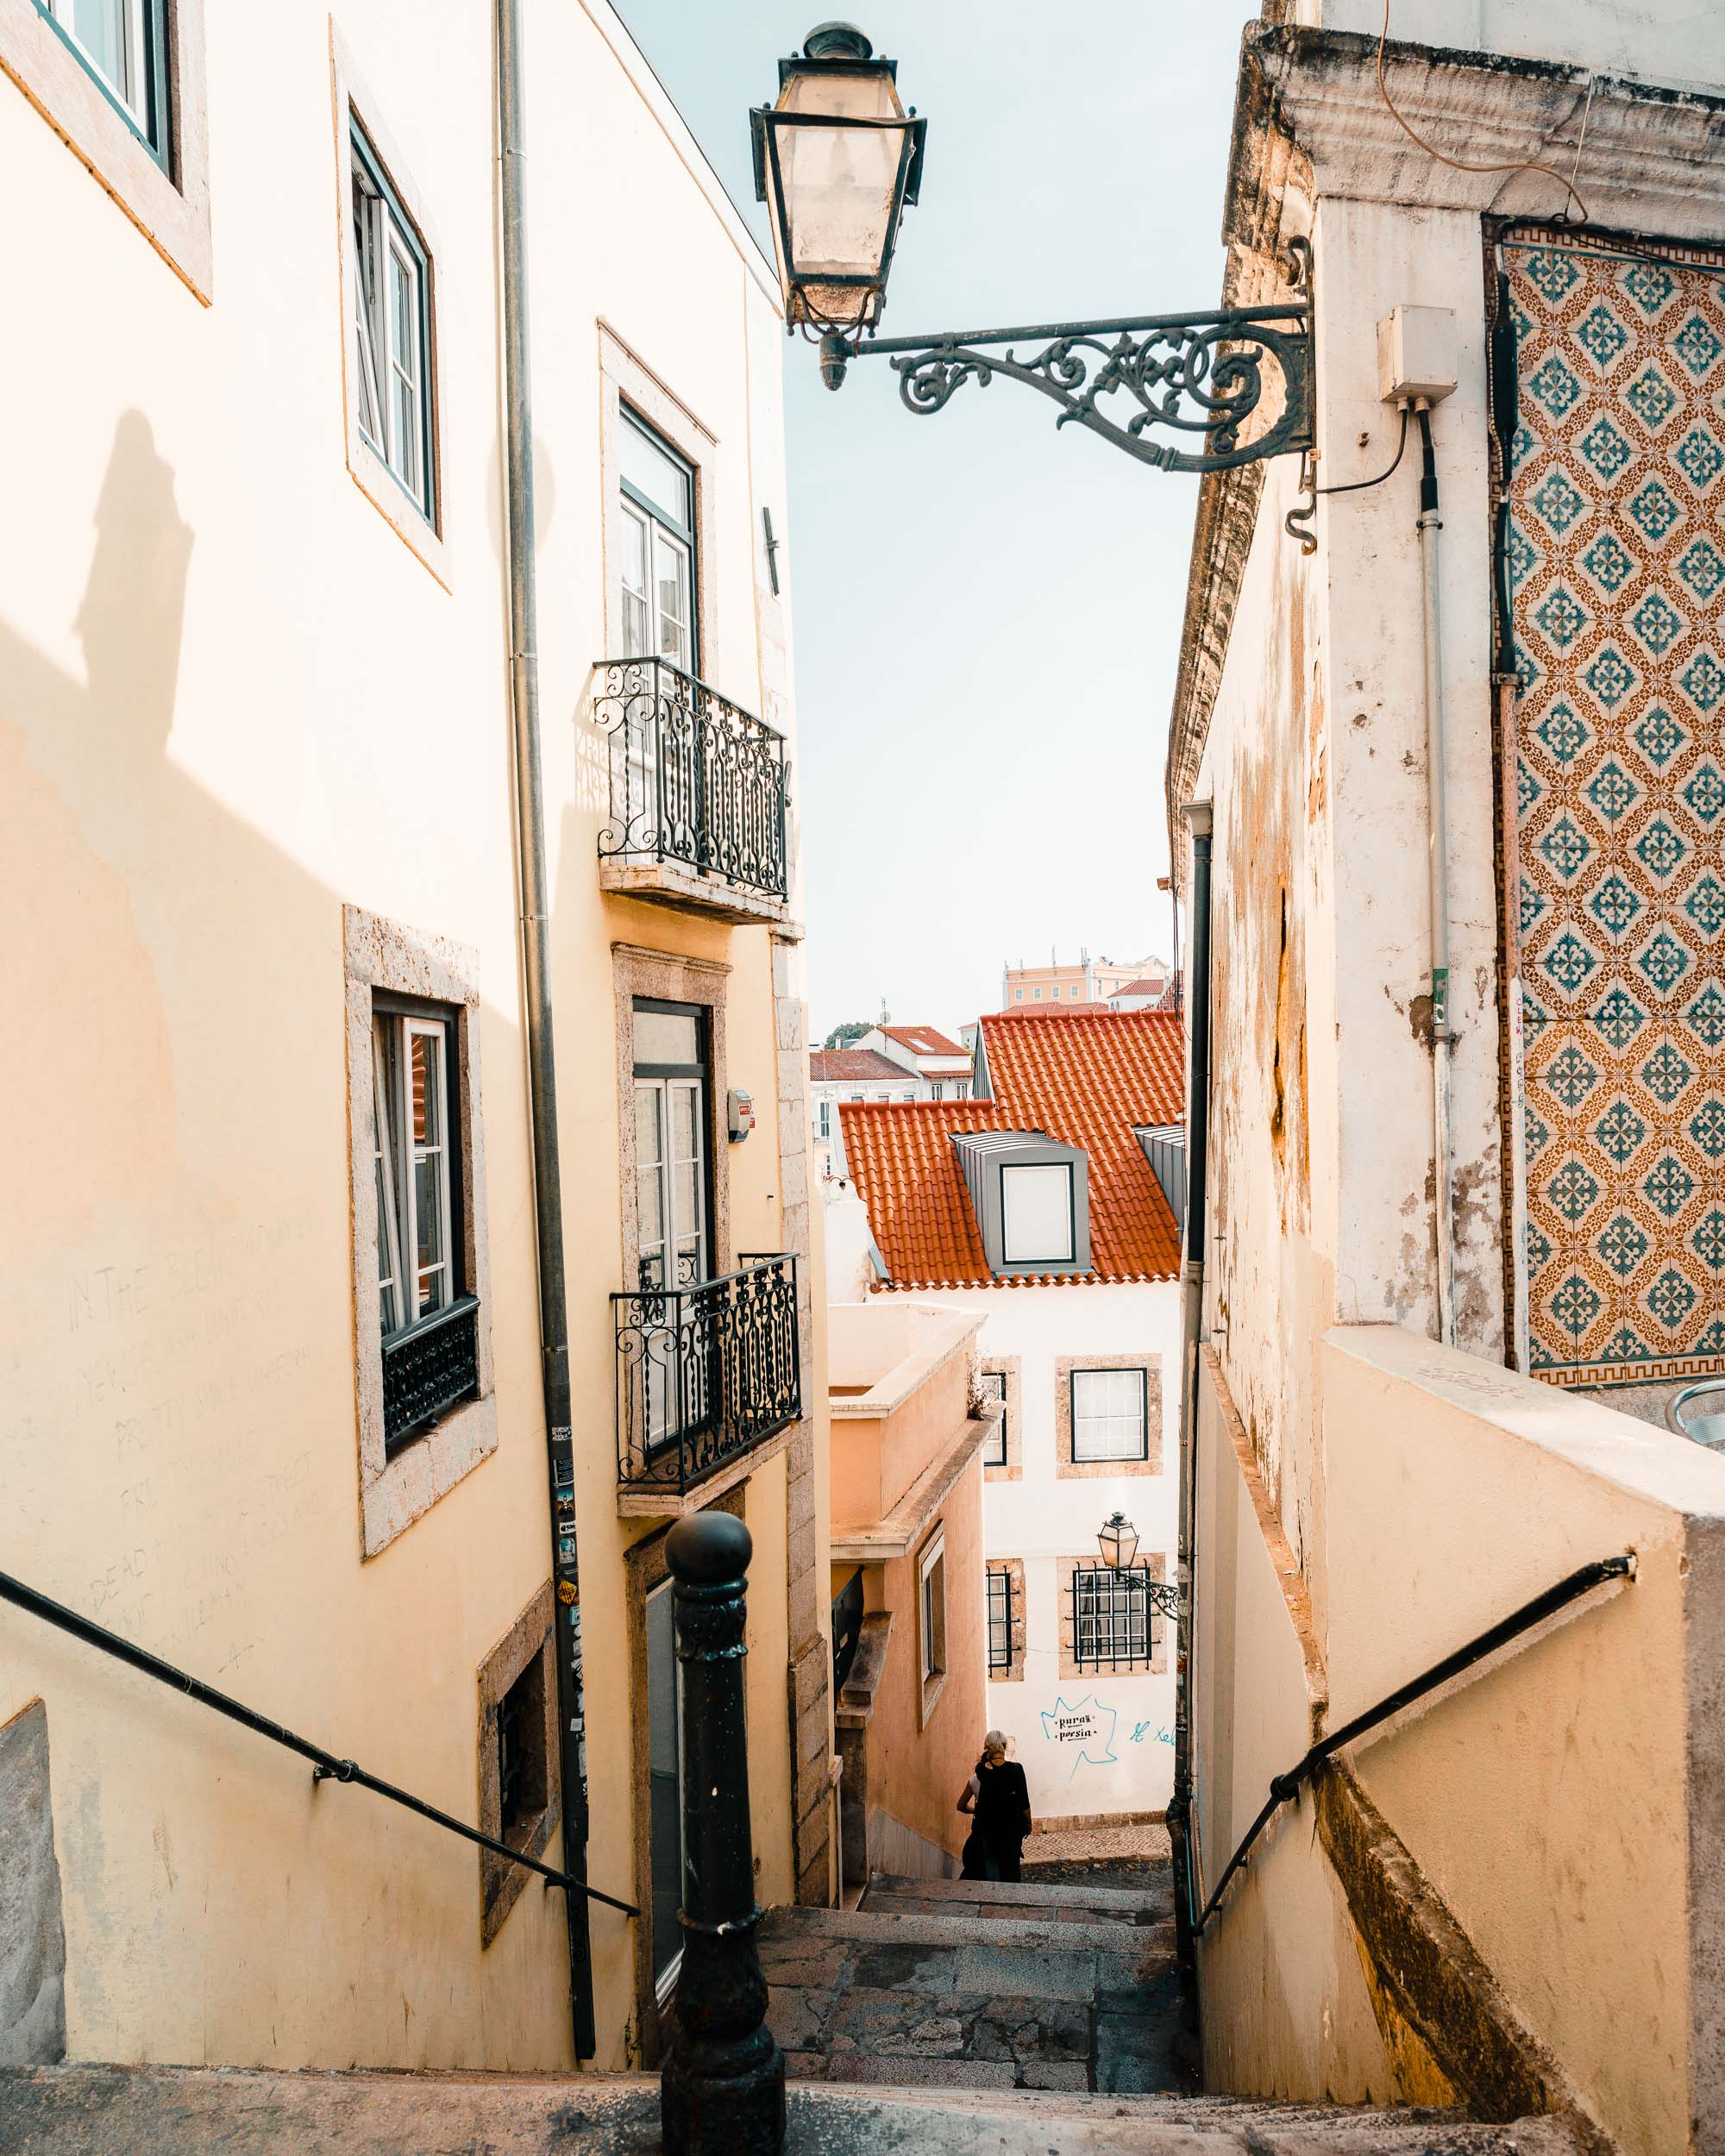 Tiled buildings and old walking streets in Alfama, Lisbon, Portugal | Lisbon Travel Guide via Find Us Lost